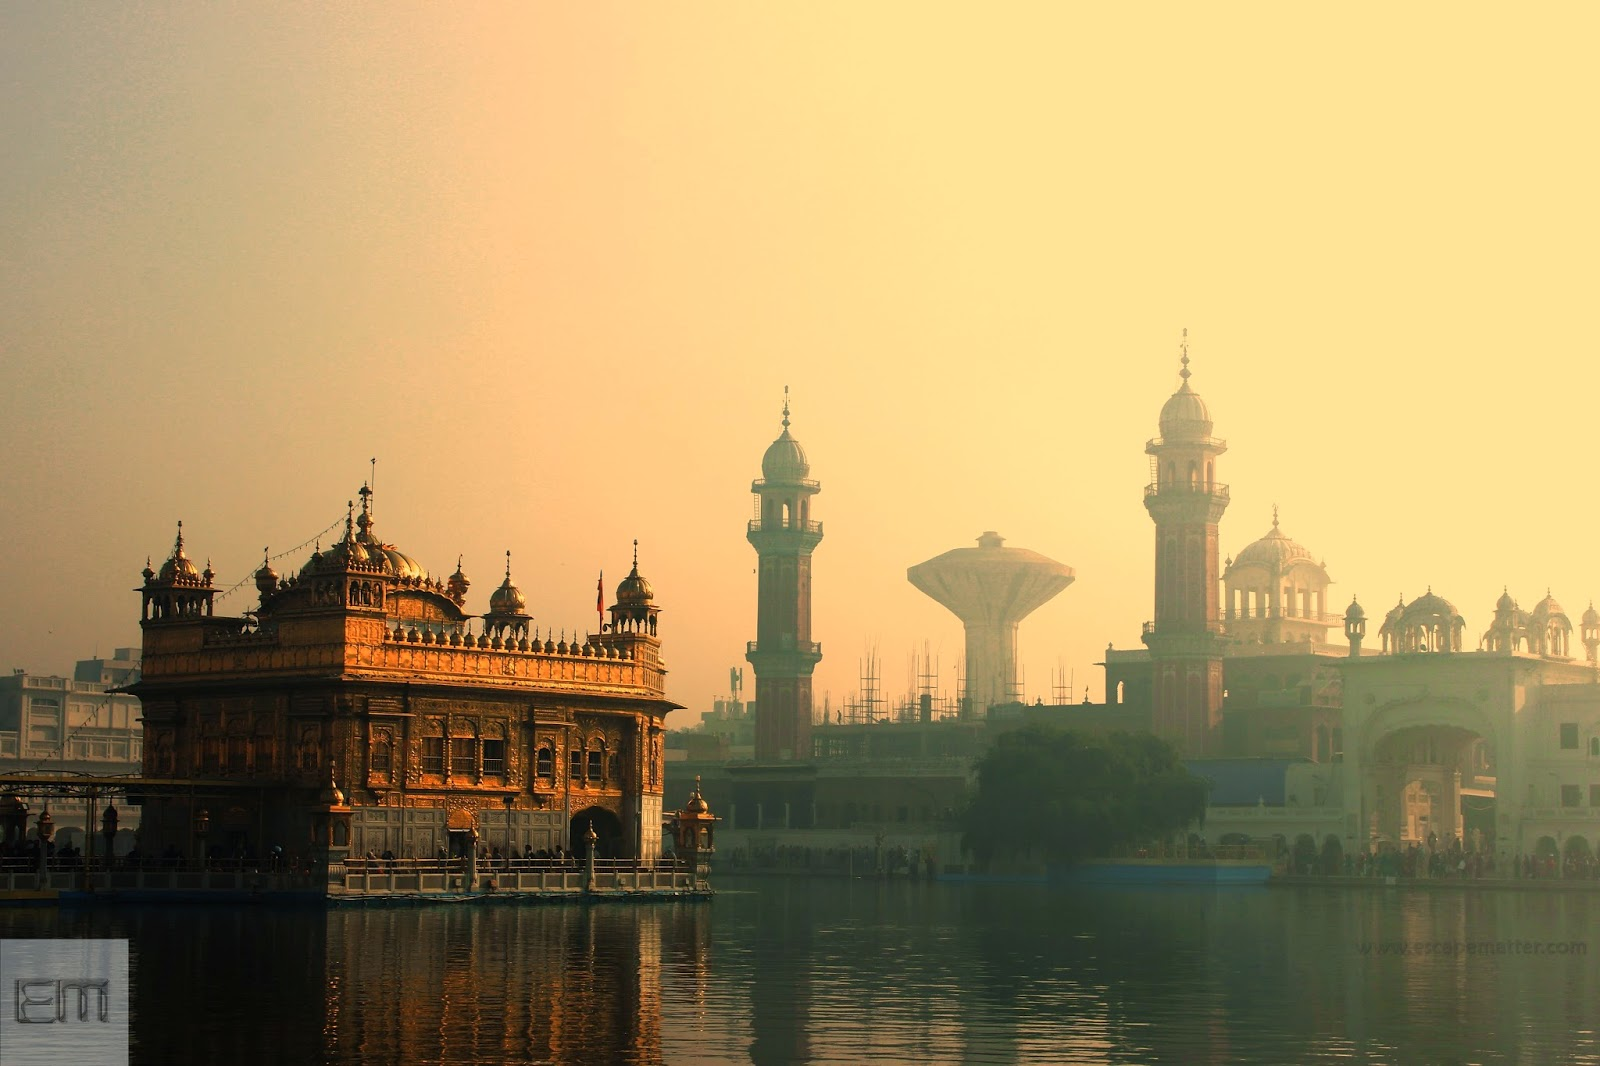 Golden Temple (Harmandir Sahib), Amritsar, Punjab 143006